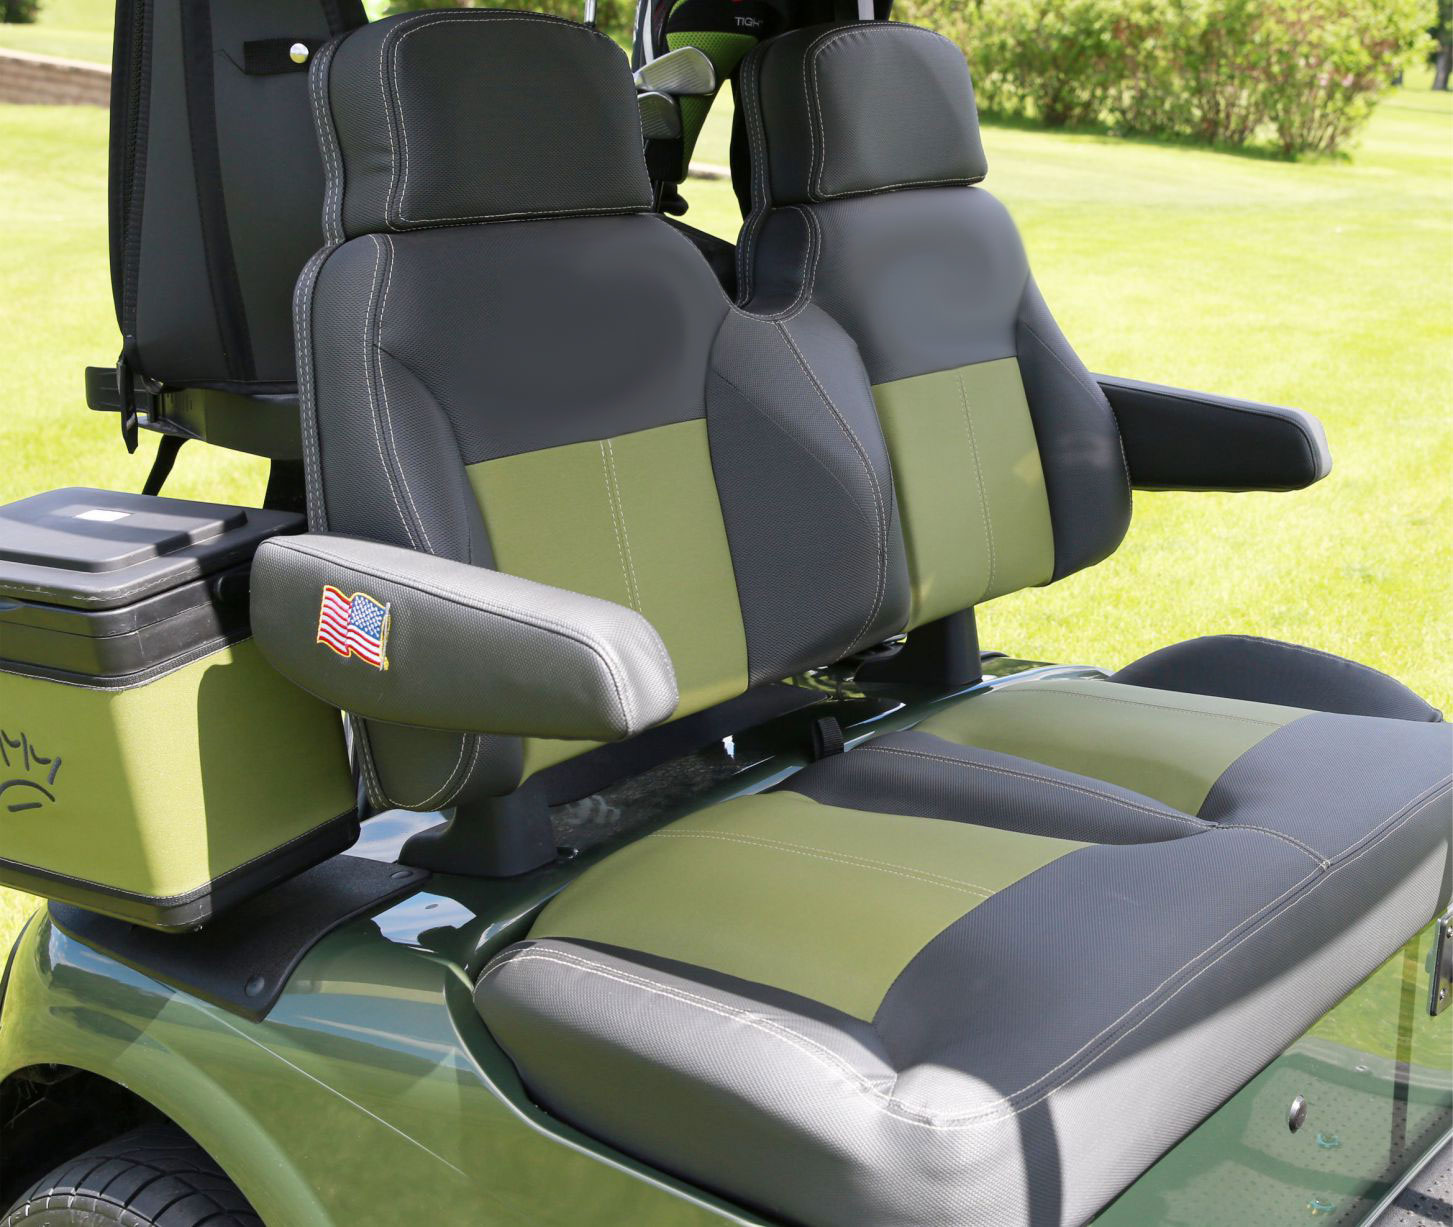 Custom Seating 9 as well Rdc3yo furthermore Watch in addition Watch in addition Hinged Door Golf Cart Enclosure Doorworks. on yamaha golf cart dash kits